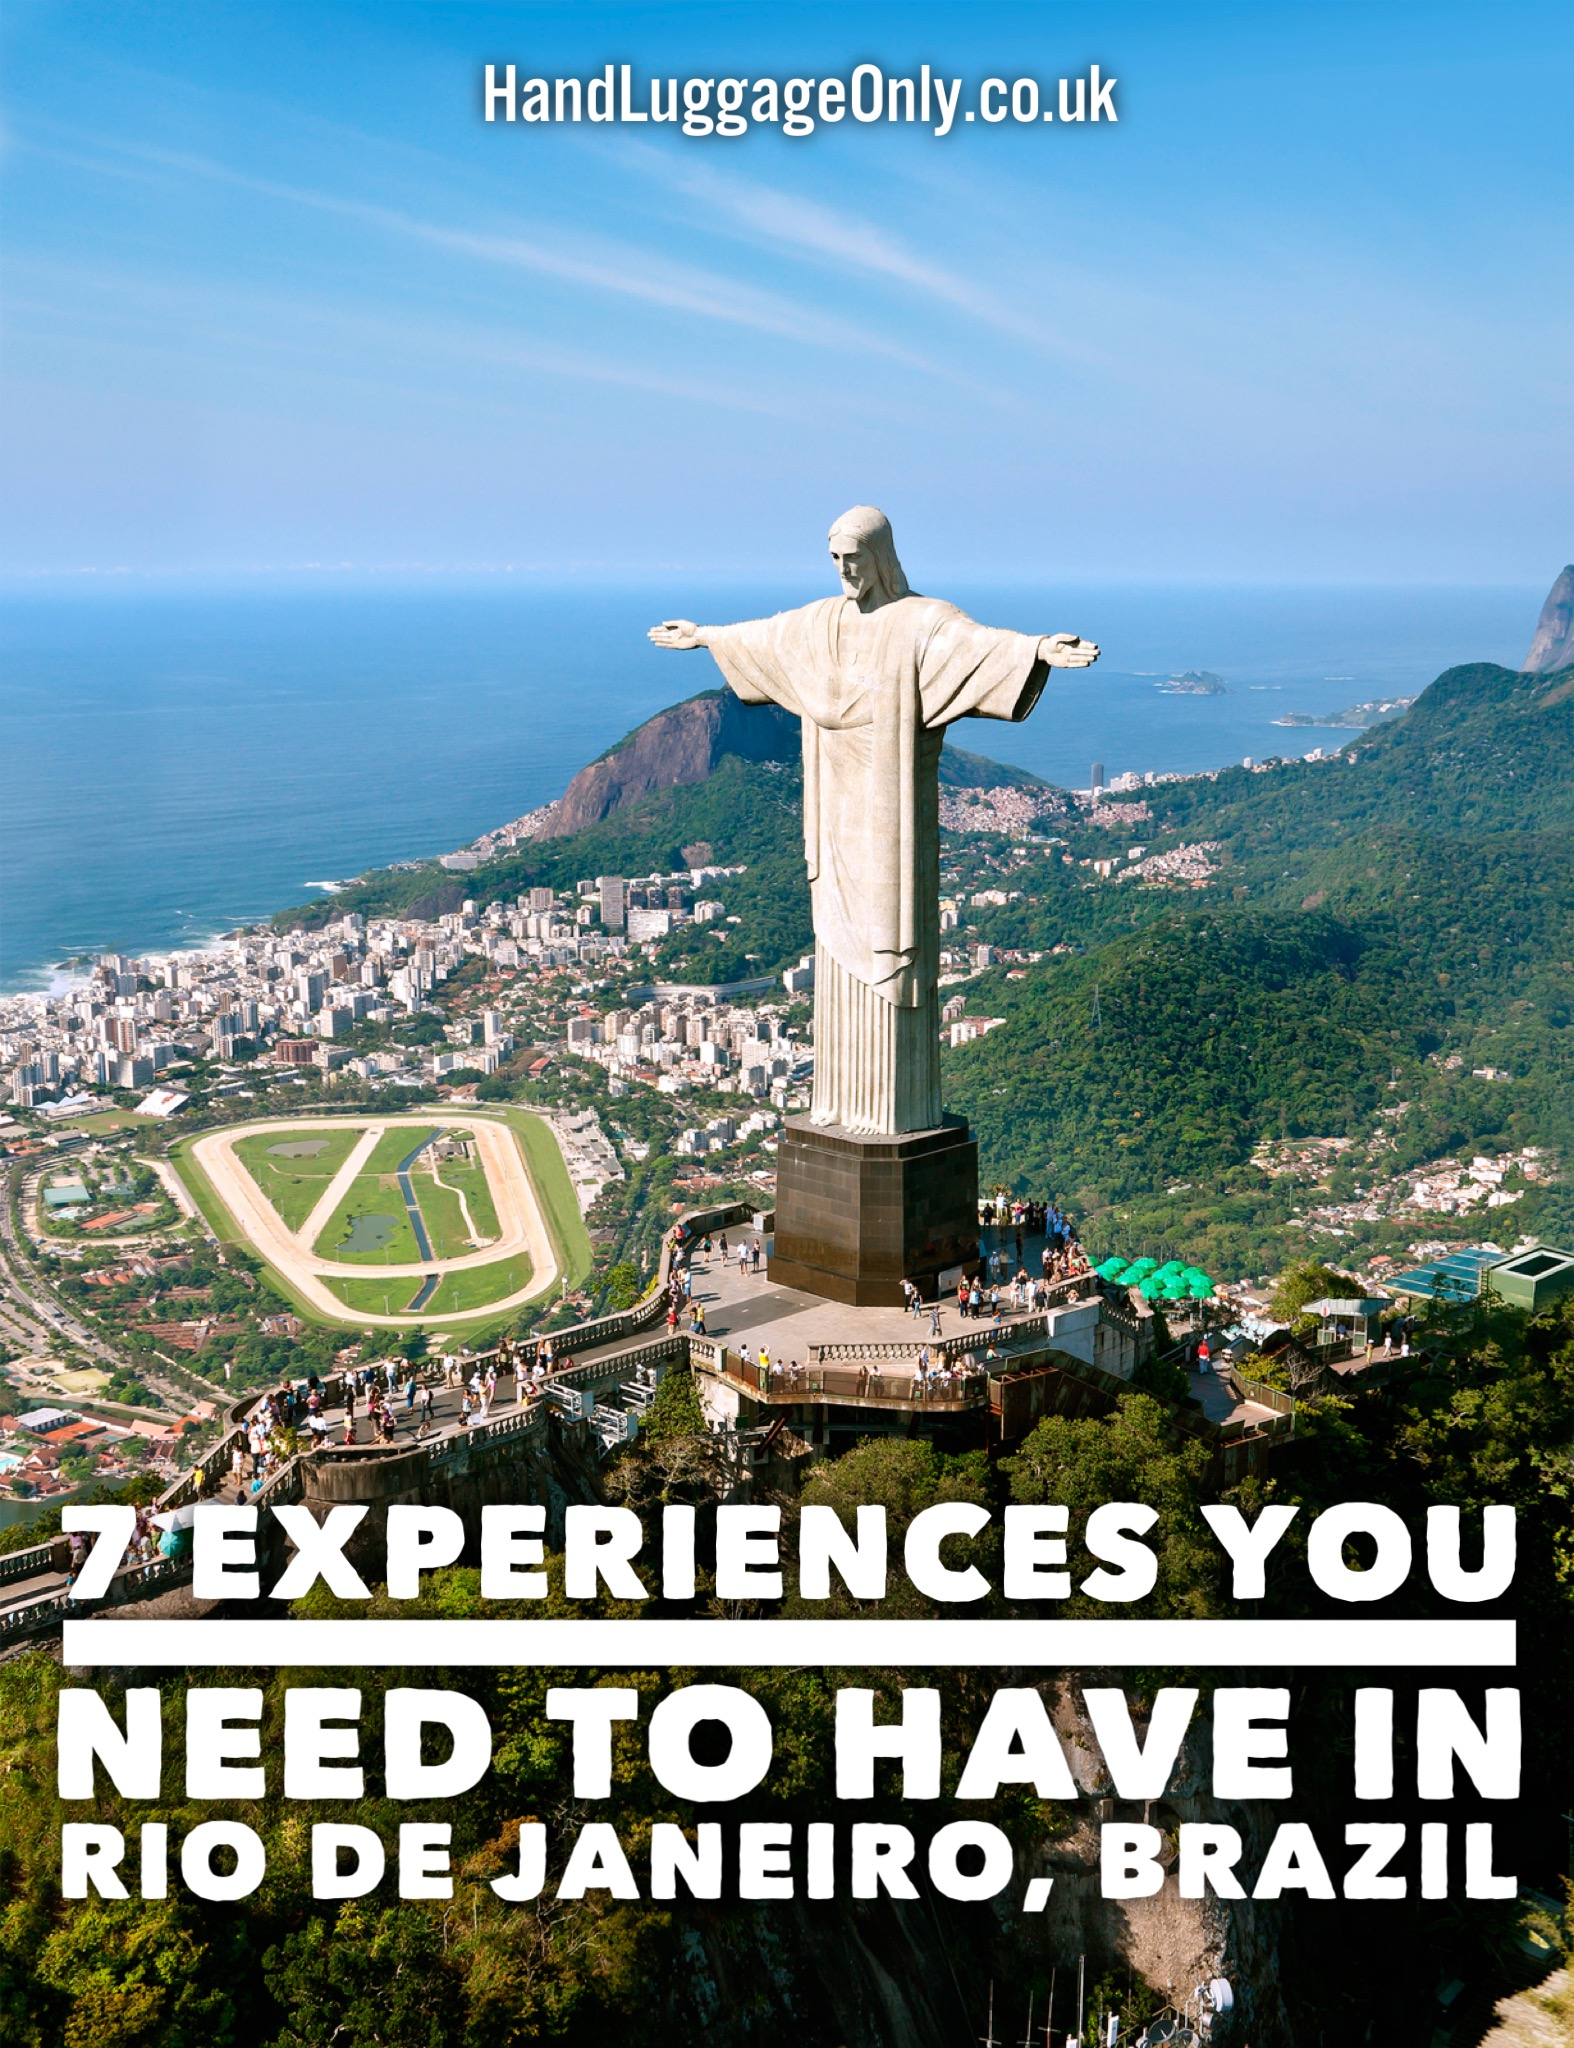 7 Experiences You Need To Have In Rio de Janeiro, Brazil